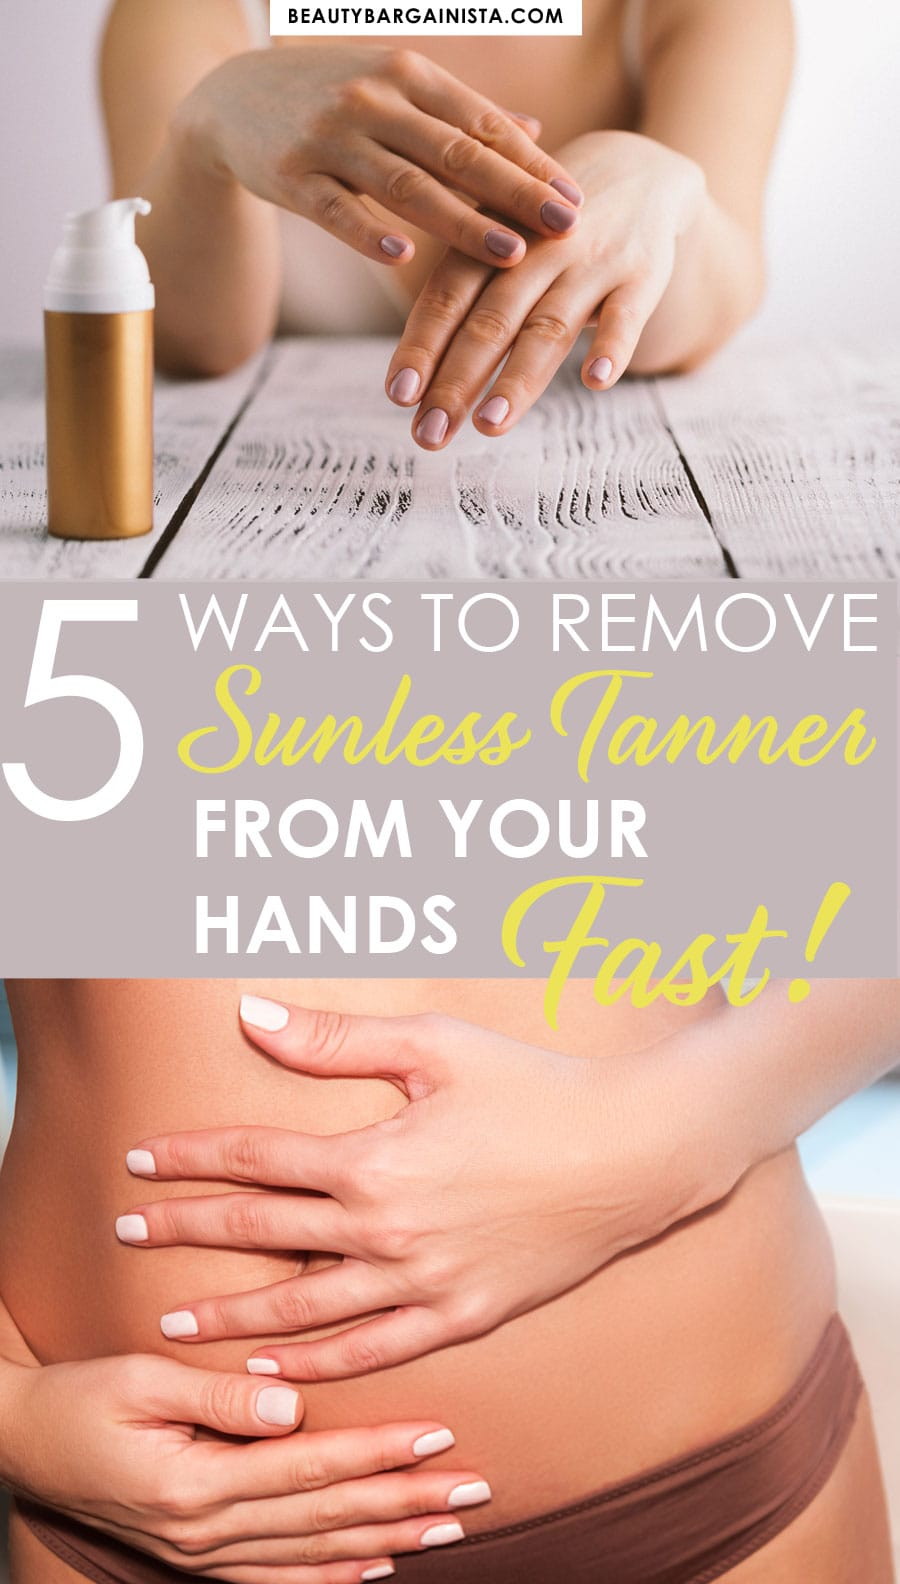 How to Remove Sunless Tanner from your hands in 30 minutes